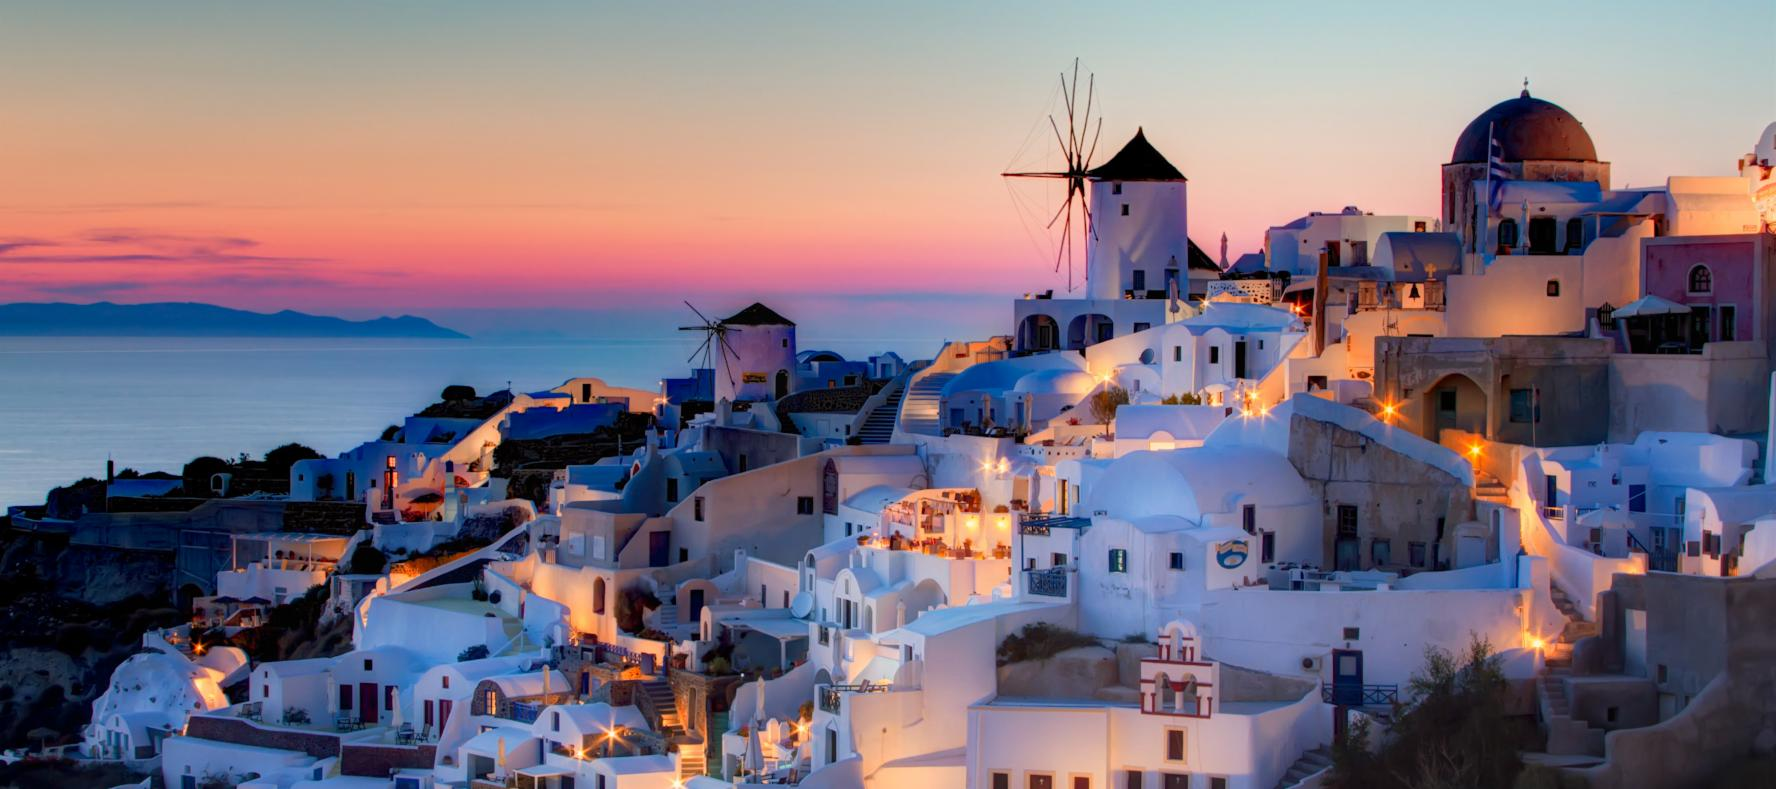 Sunset in Oia, Santorini - Santorini Bucket List